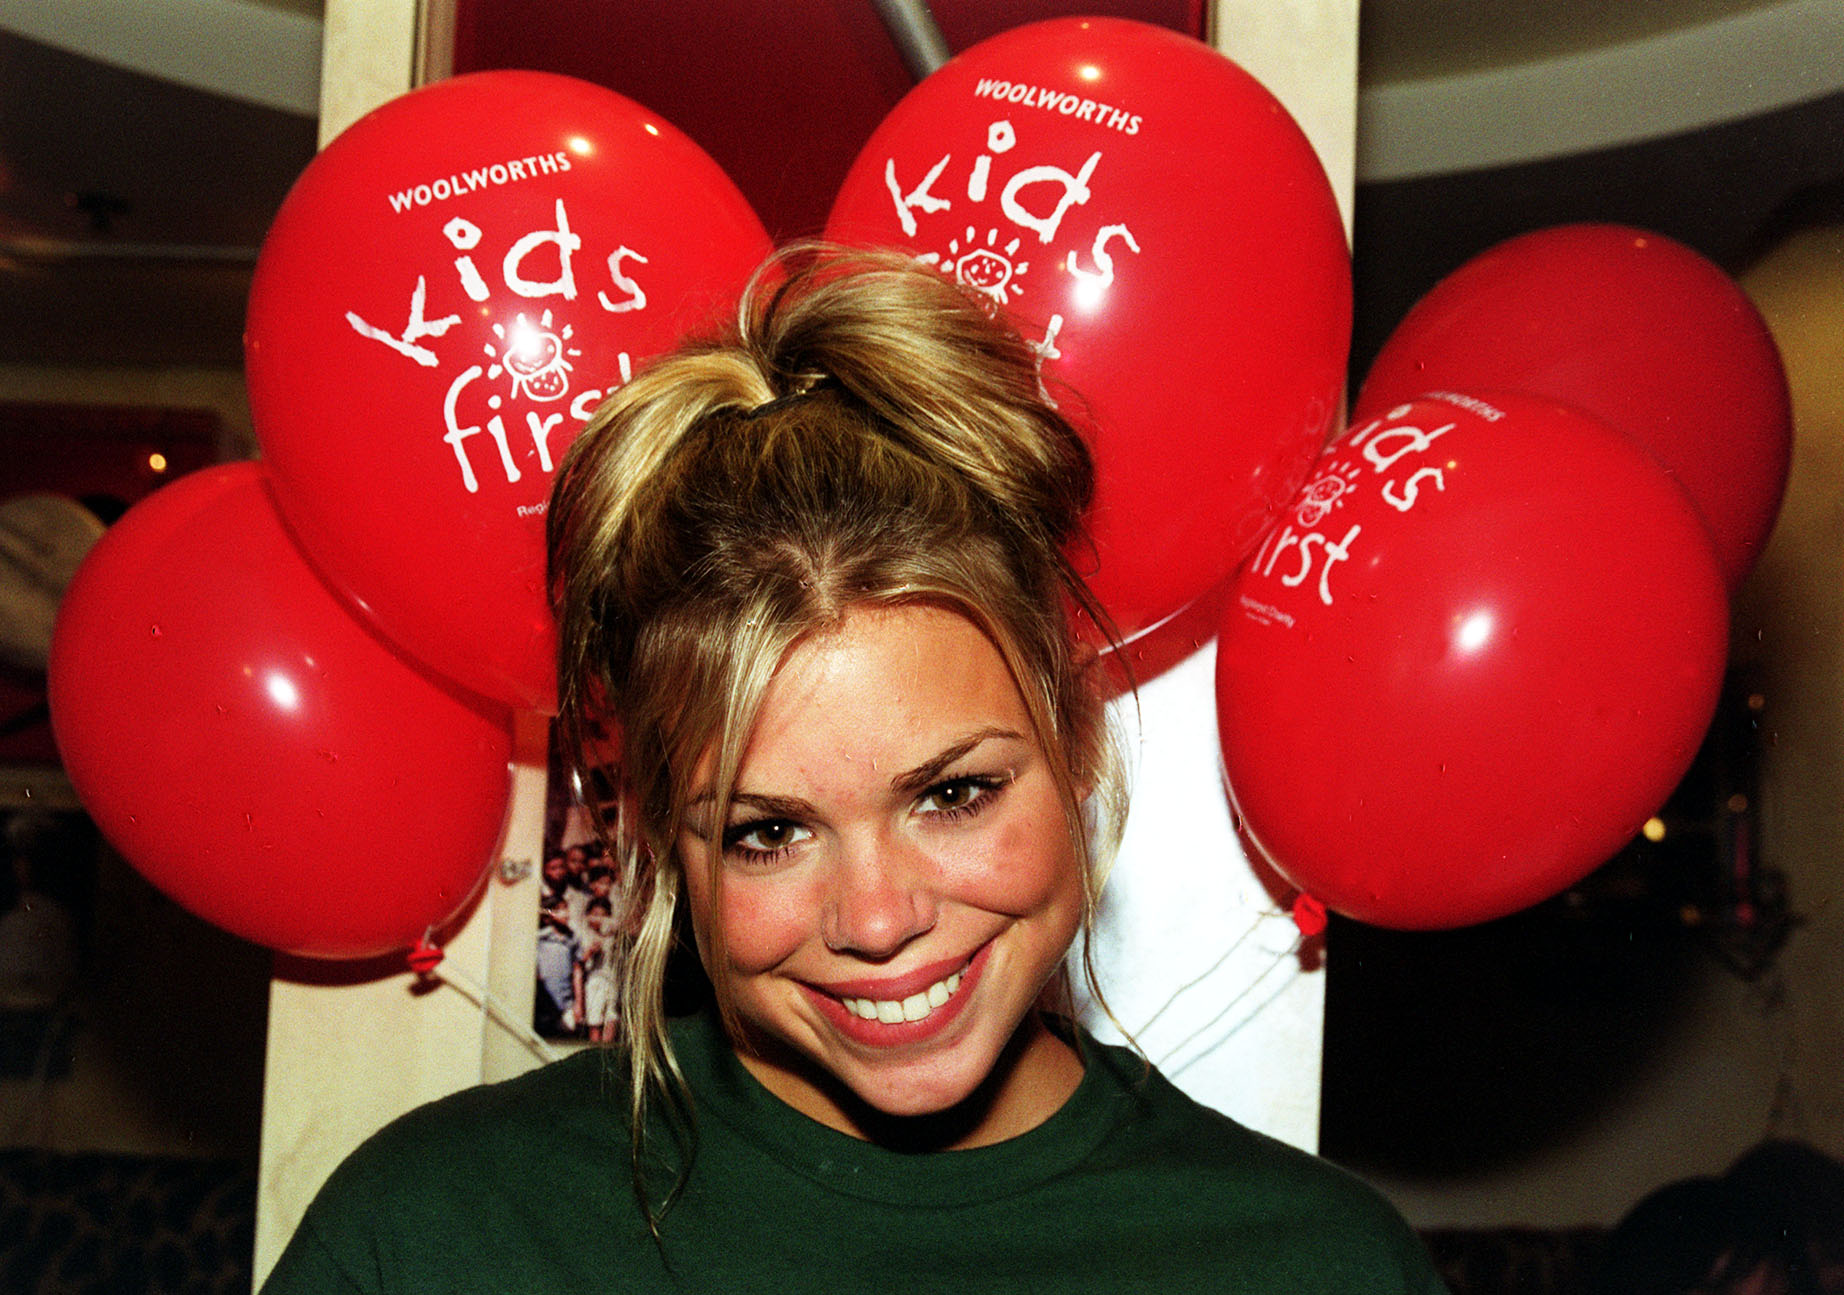 """Teenage pop singer Billie Piper at Planet Hollywood in London, to celebrate the first birthday of Woolworths """"Kids First"""".   (Photo by Tony Harris - PA Images/PA Images via Getty Images)"""